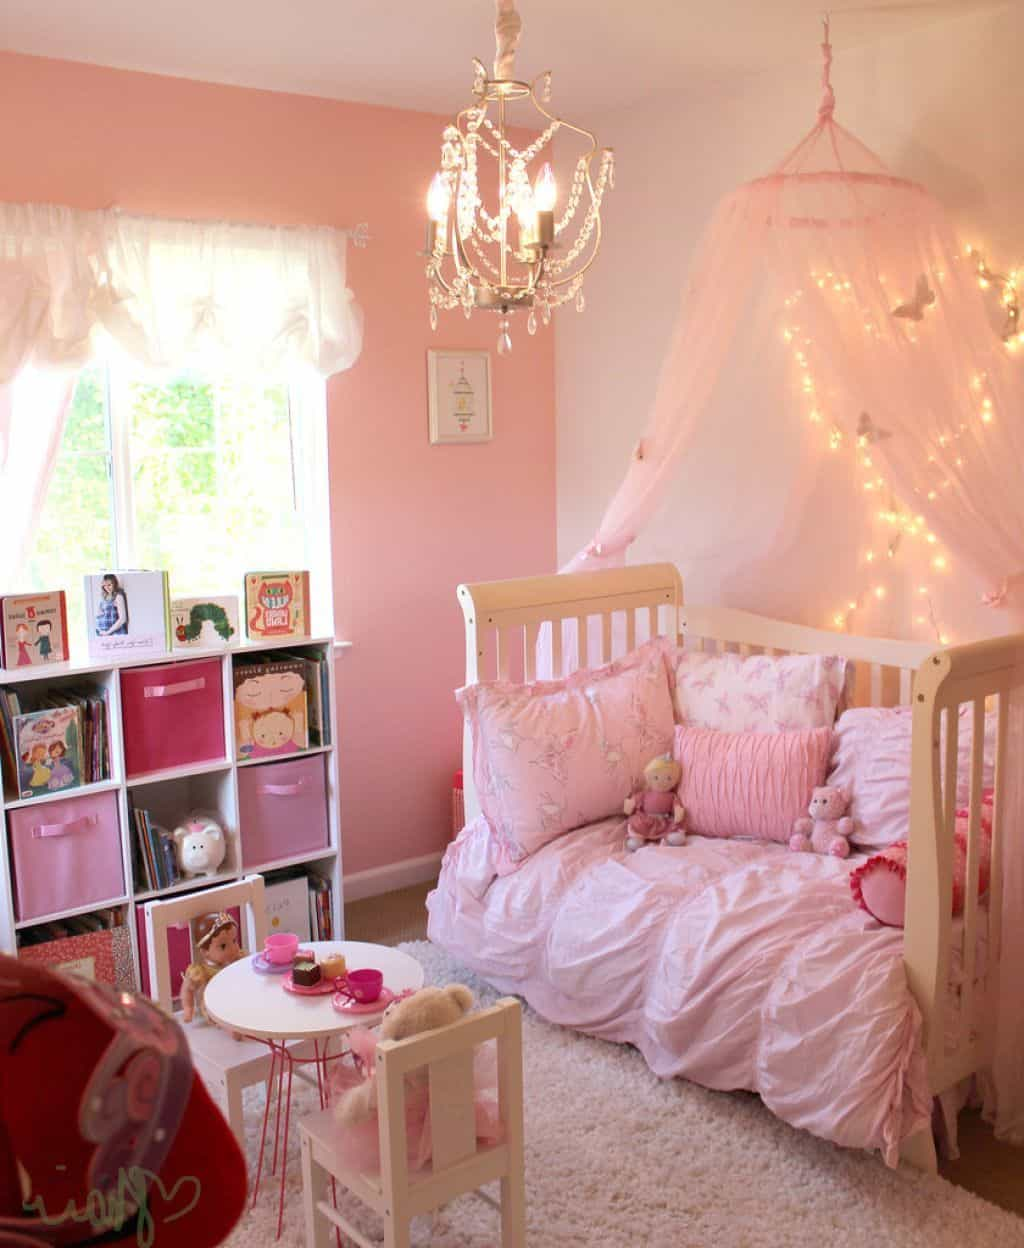 32 Cheery Designs For A Little Girl S Dream Bedroom